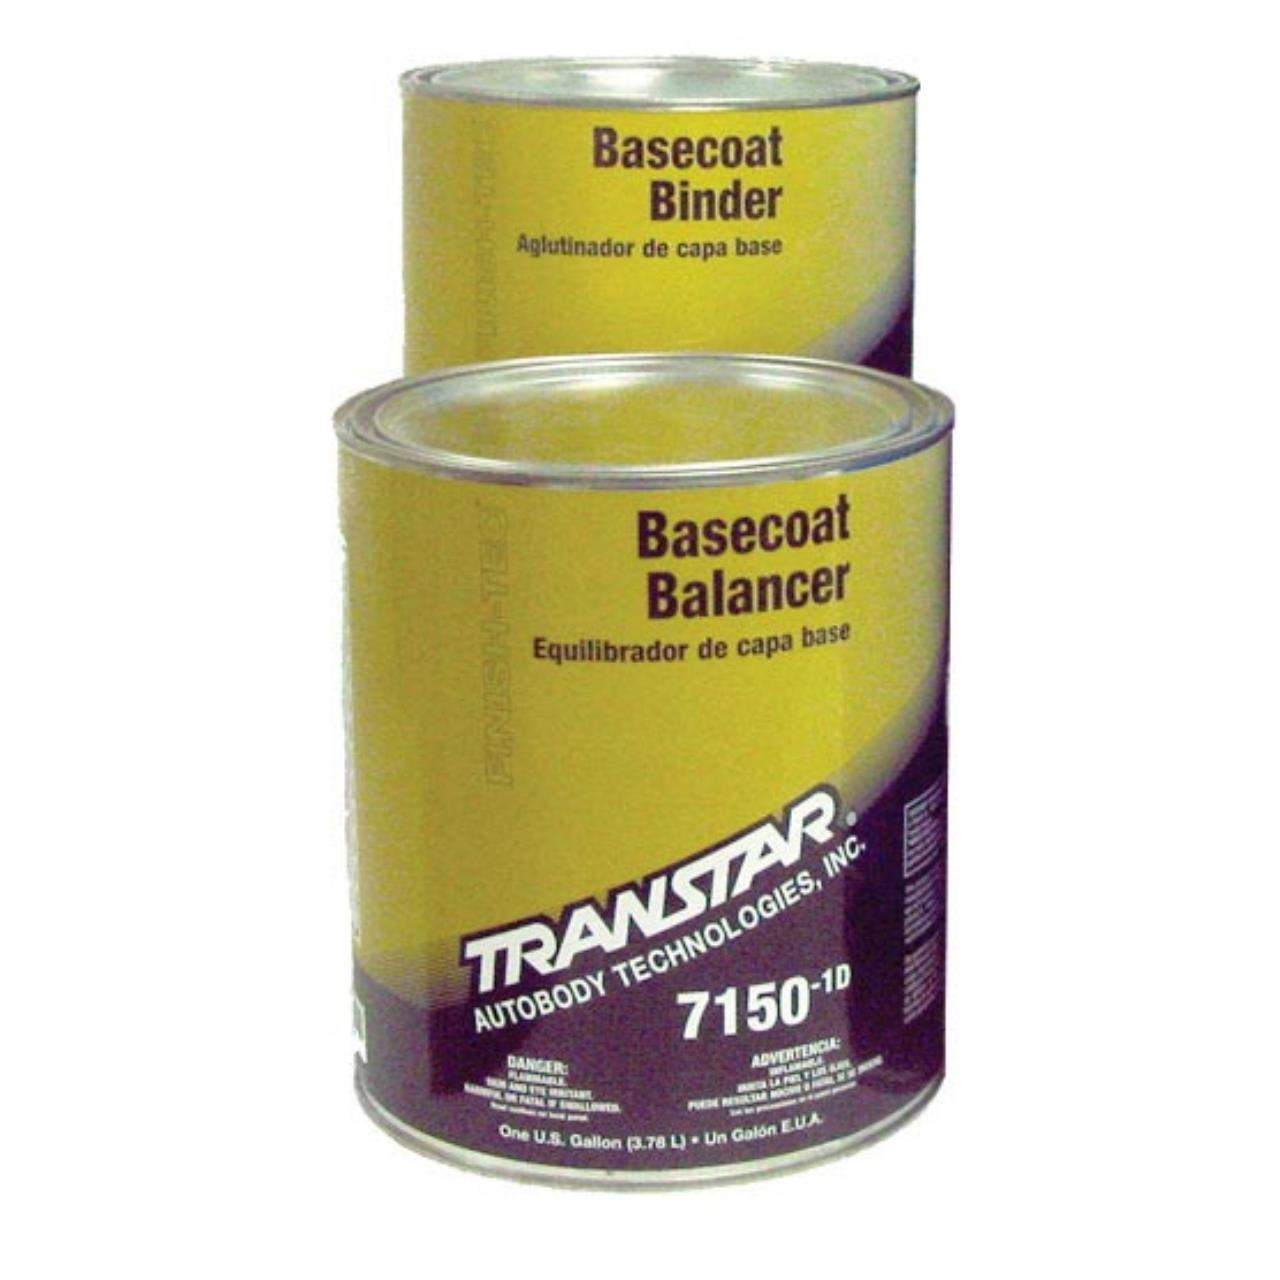 TRN-7150-1D-basecoat-balancer-gallon